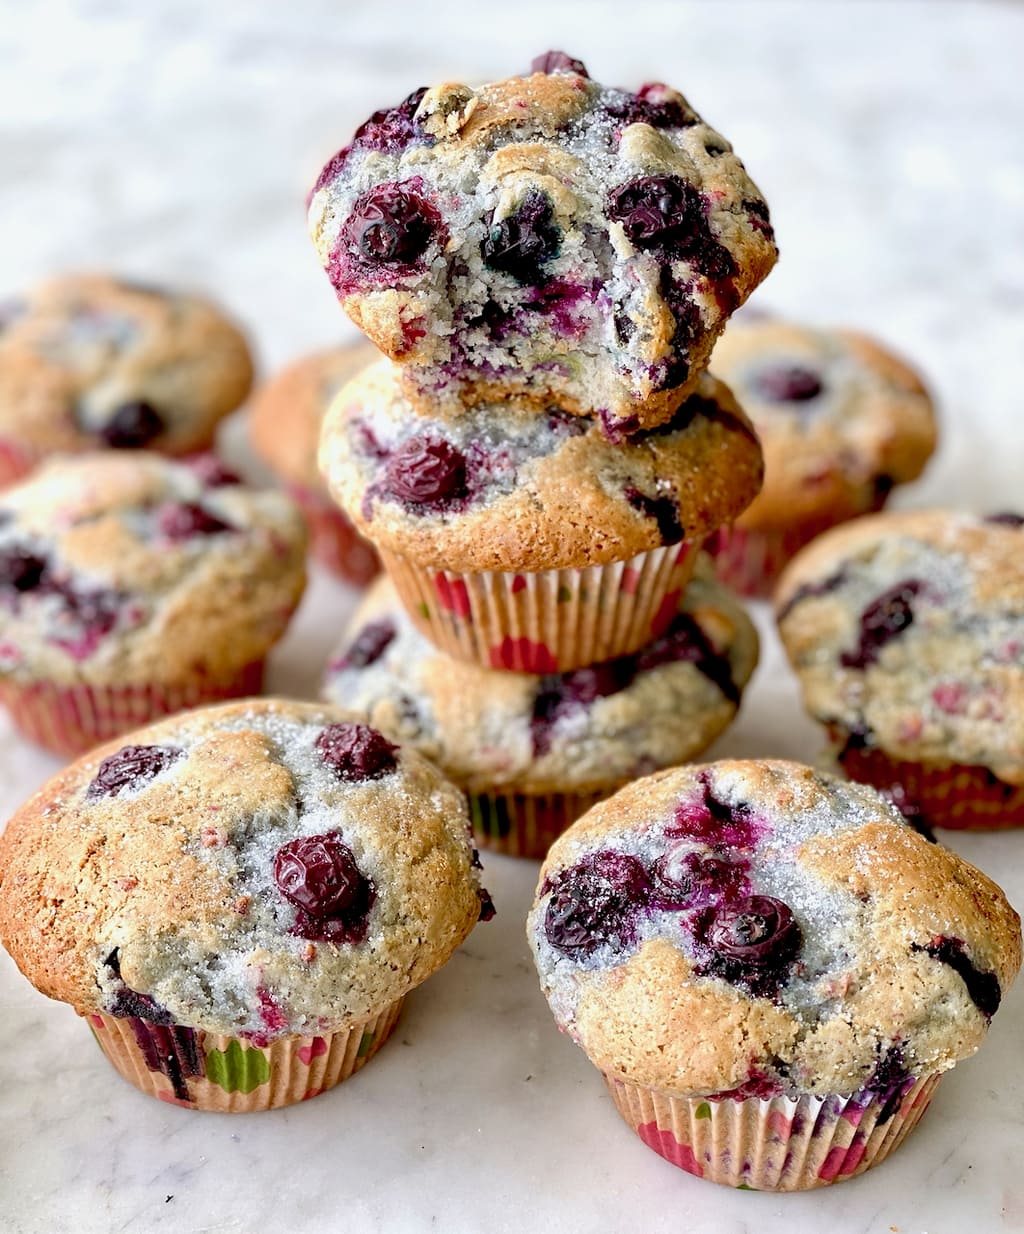 blueberry muffins stacked on top of each other with one opened up to show insides